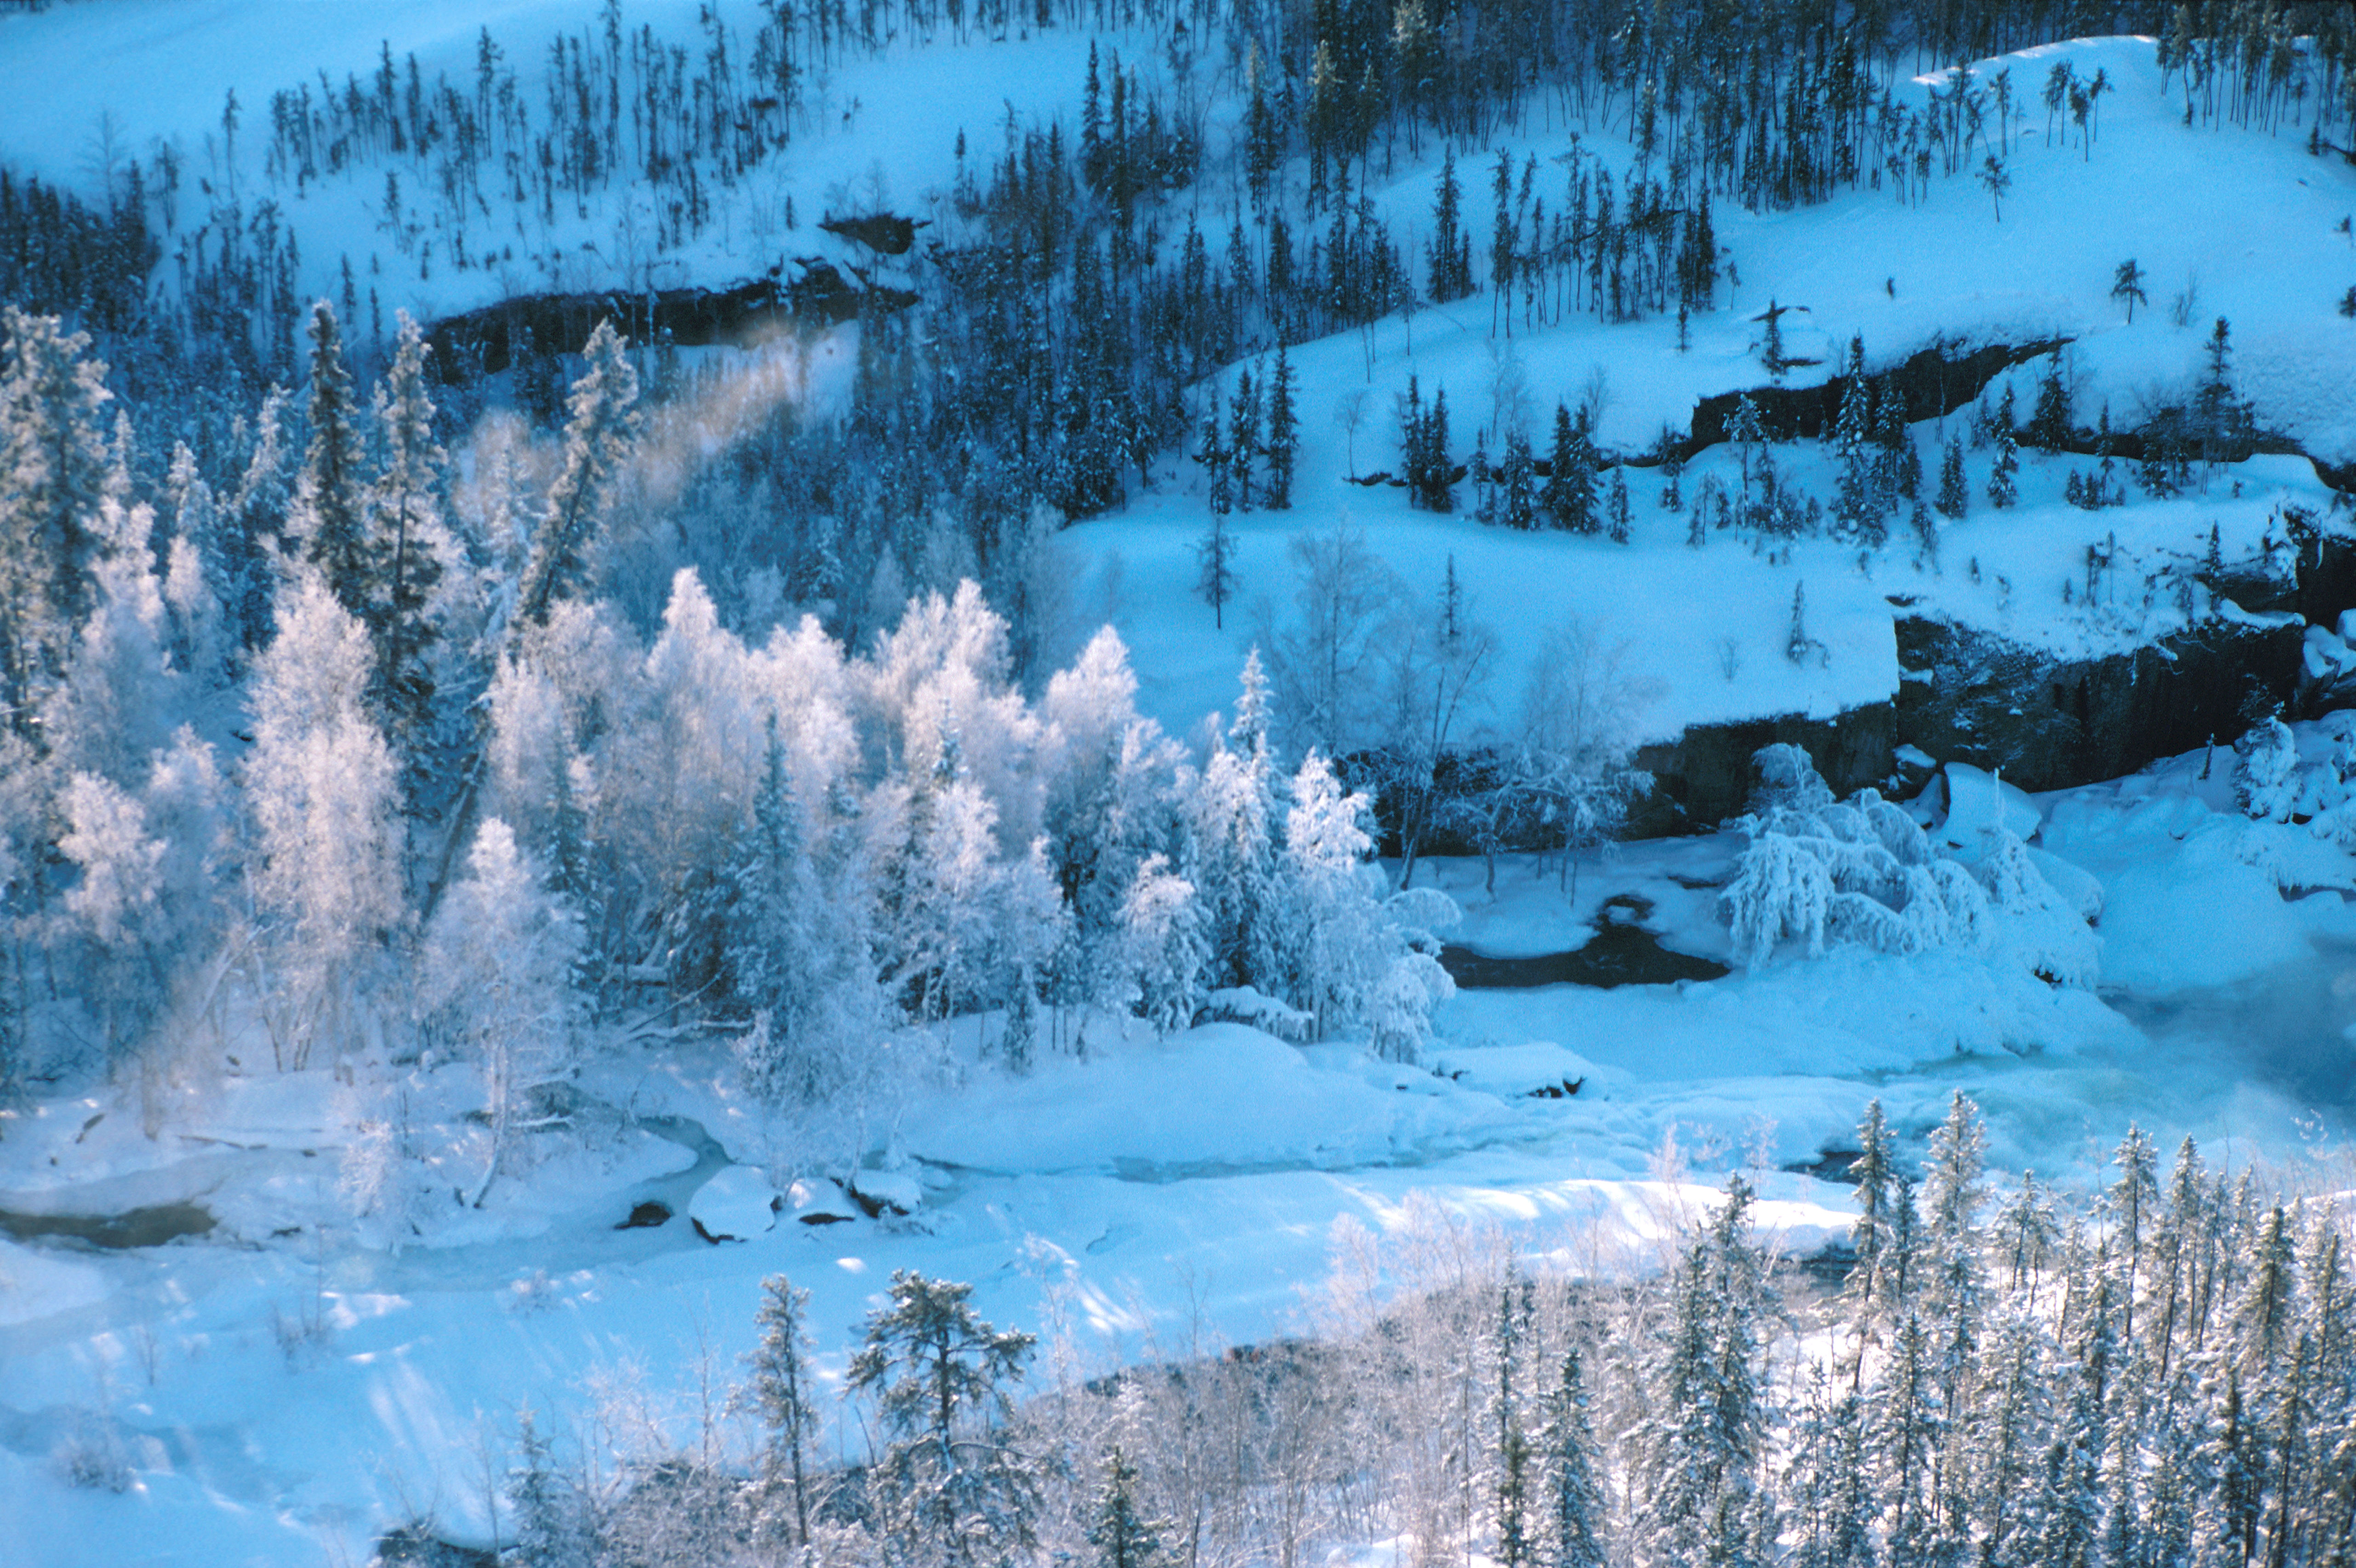 Winters are harsh in the Northwest Territories